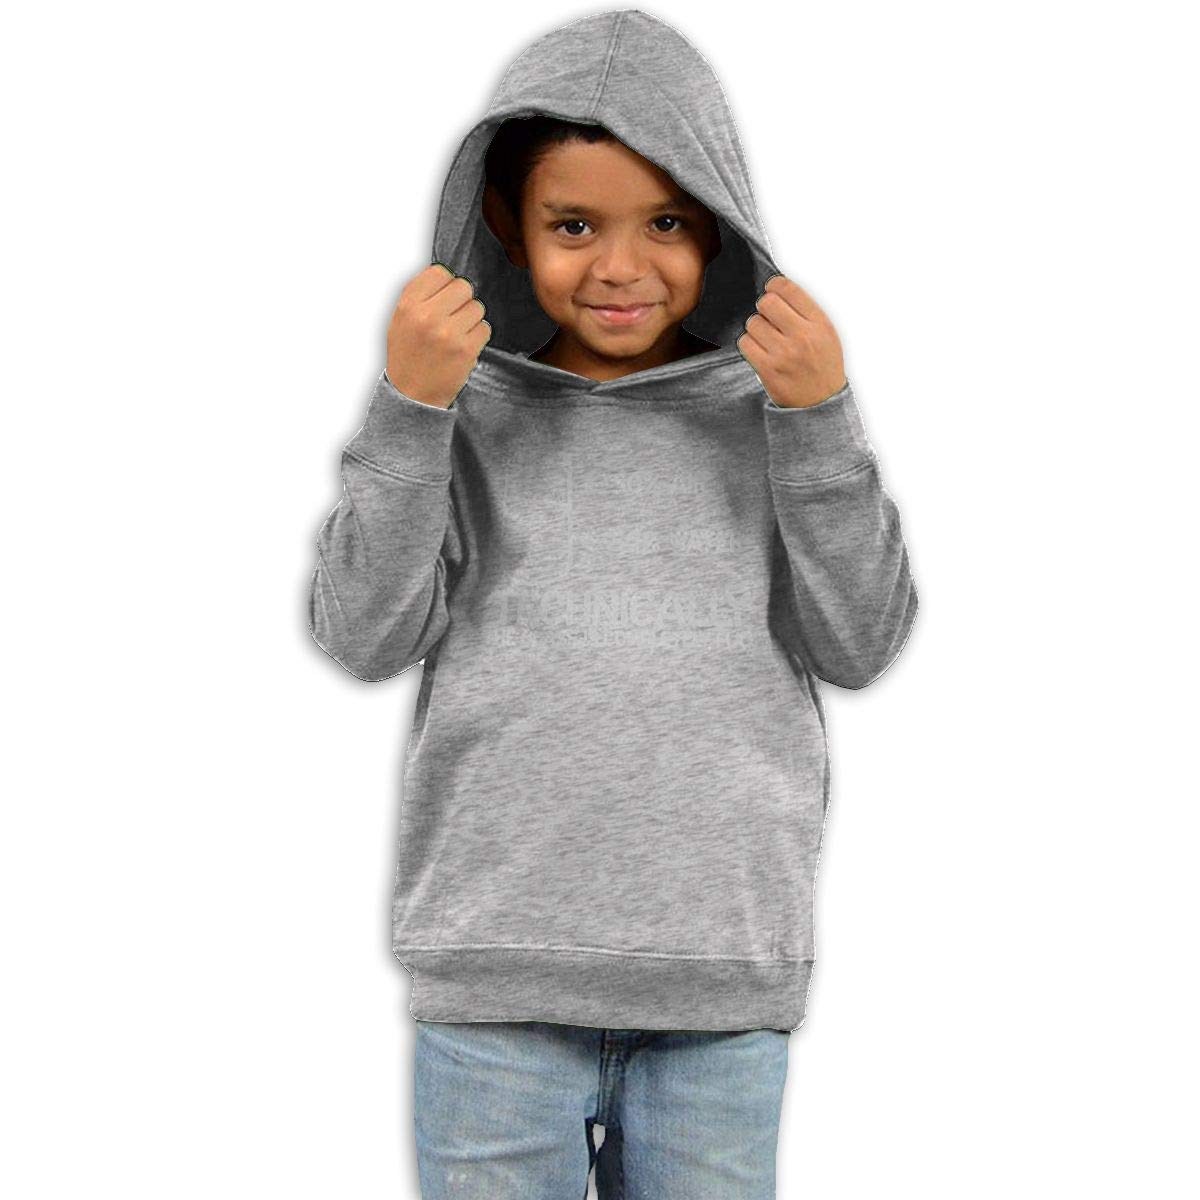 Childrens Hooded Sweater Technically The Glass is Completely Kids Sweater Black